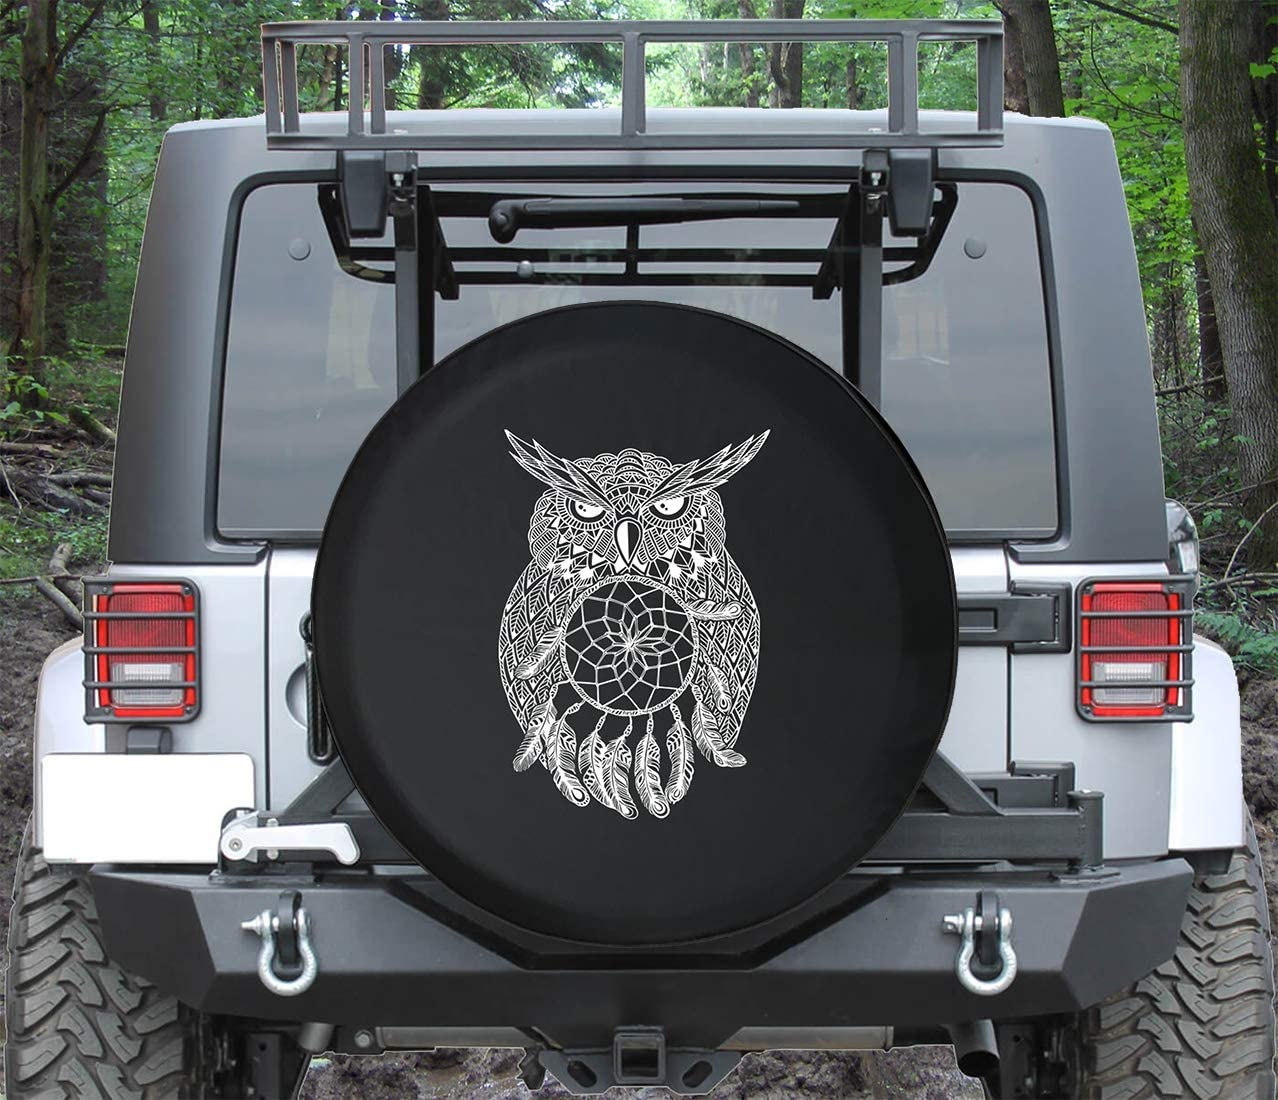 Universal Spare Tire Cover Owl Catcher 55% OFF for Fit S Dream List price